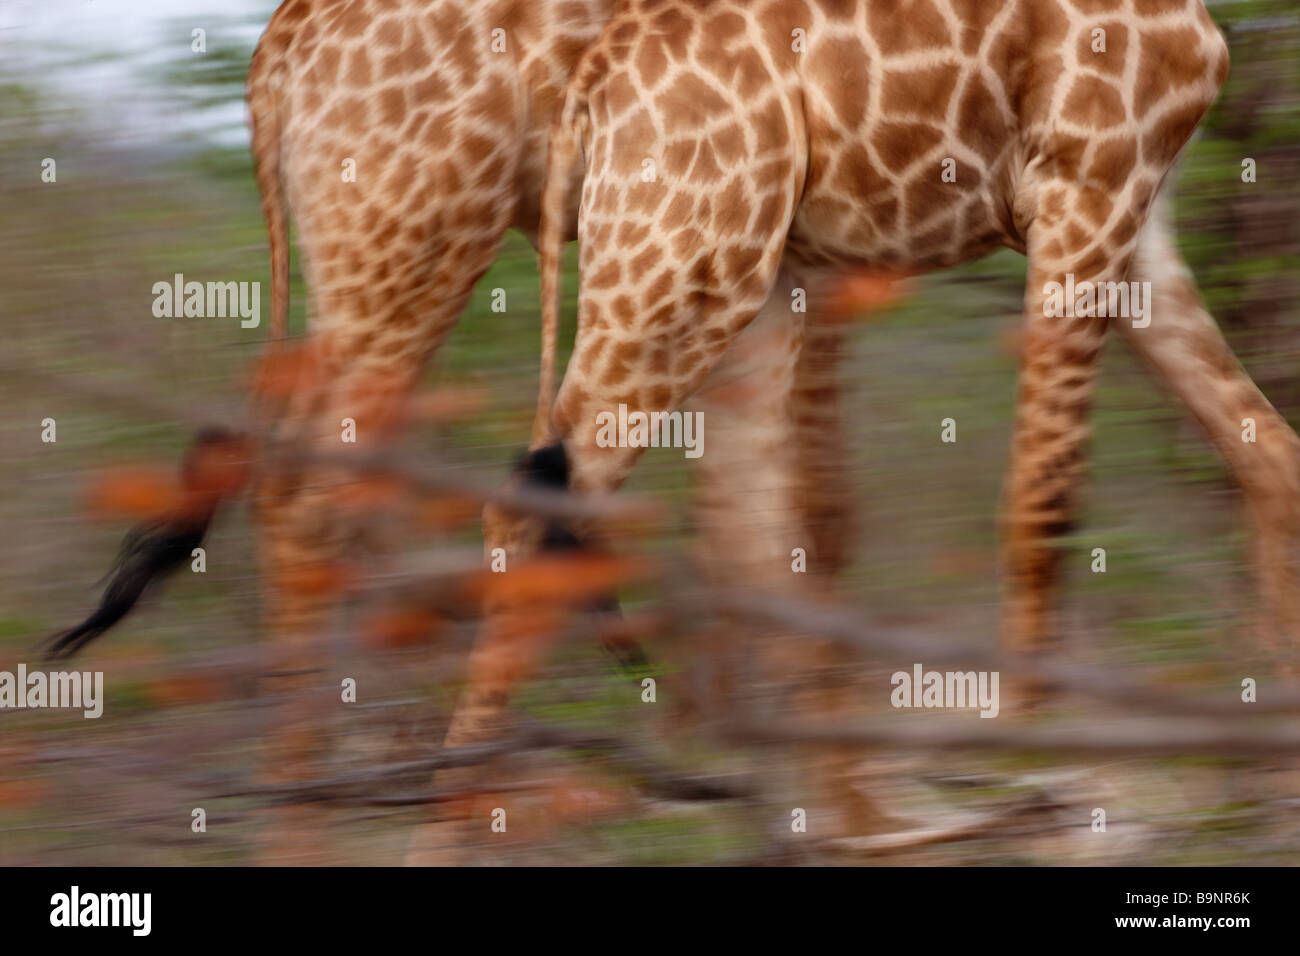 giraffes on the move, Kruger National Park, South Africa - Stock Image